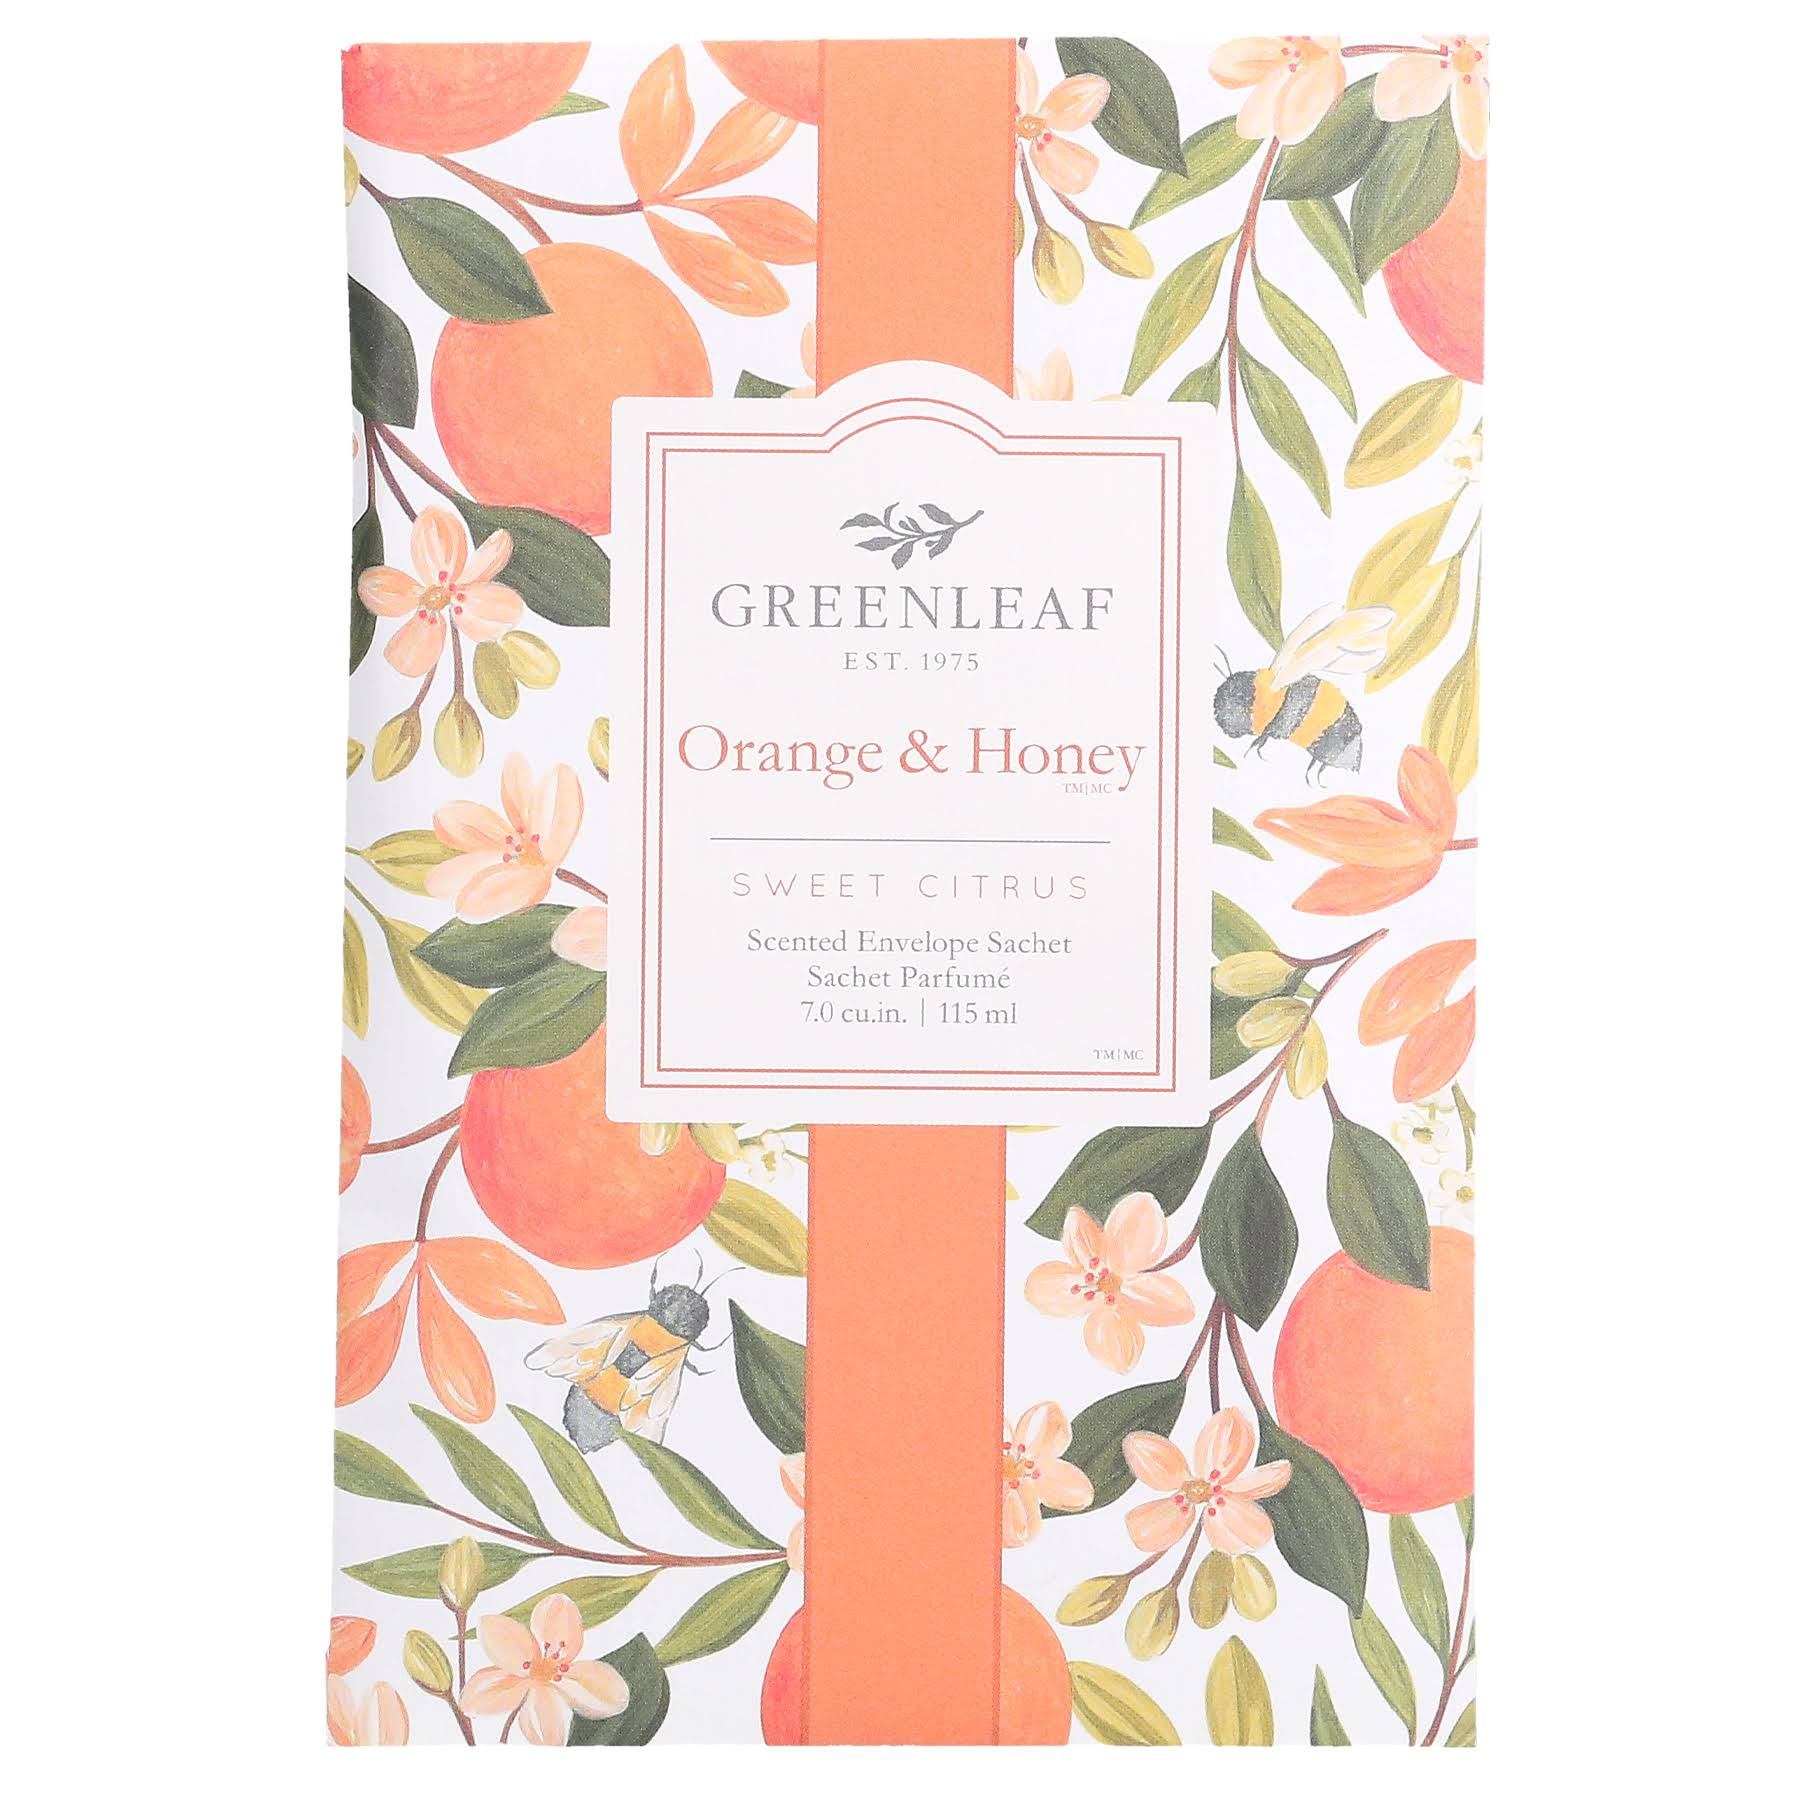 Greenleaf Sachet Orange & Honey